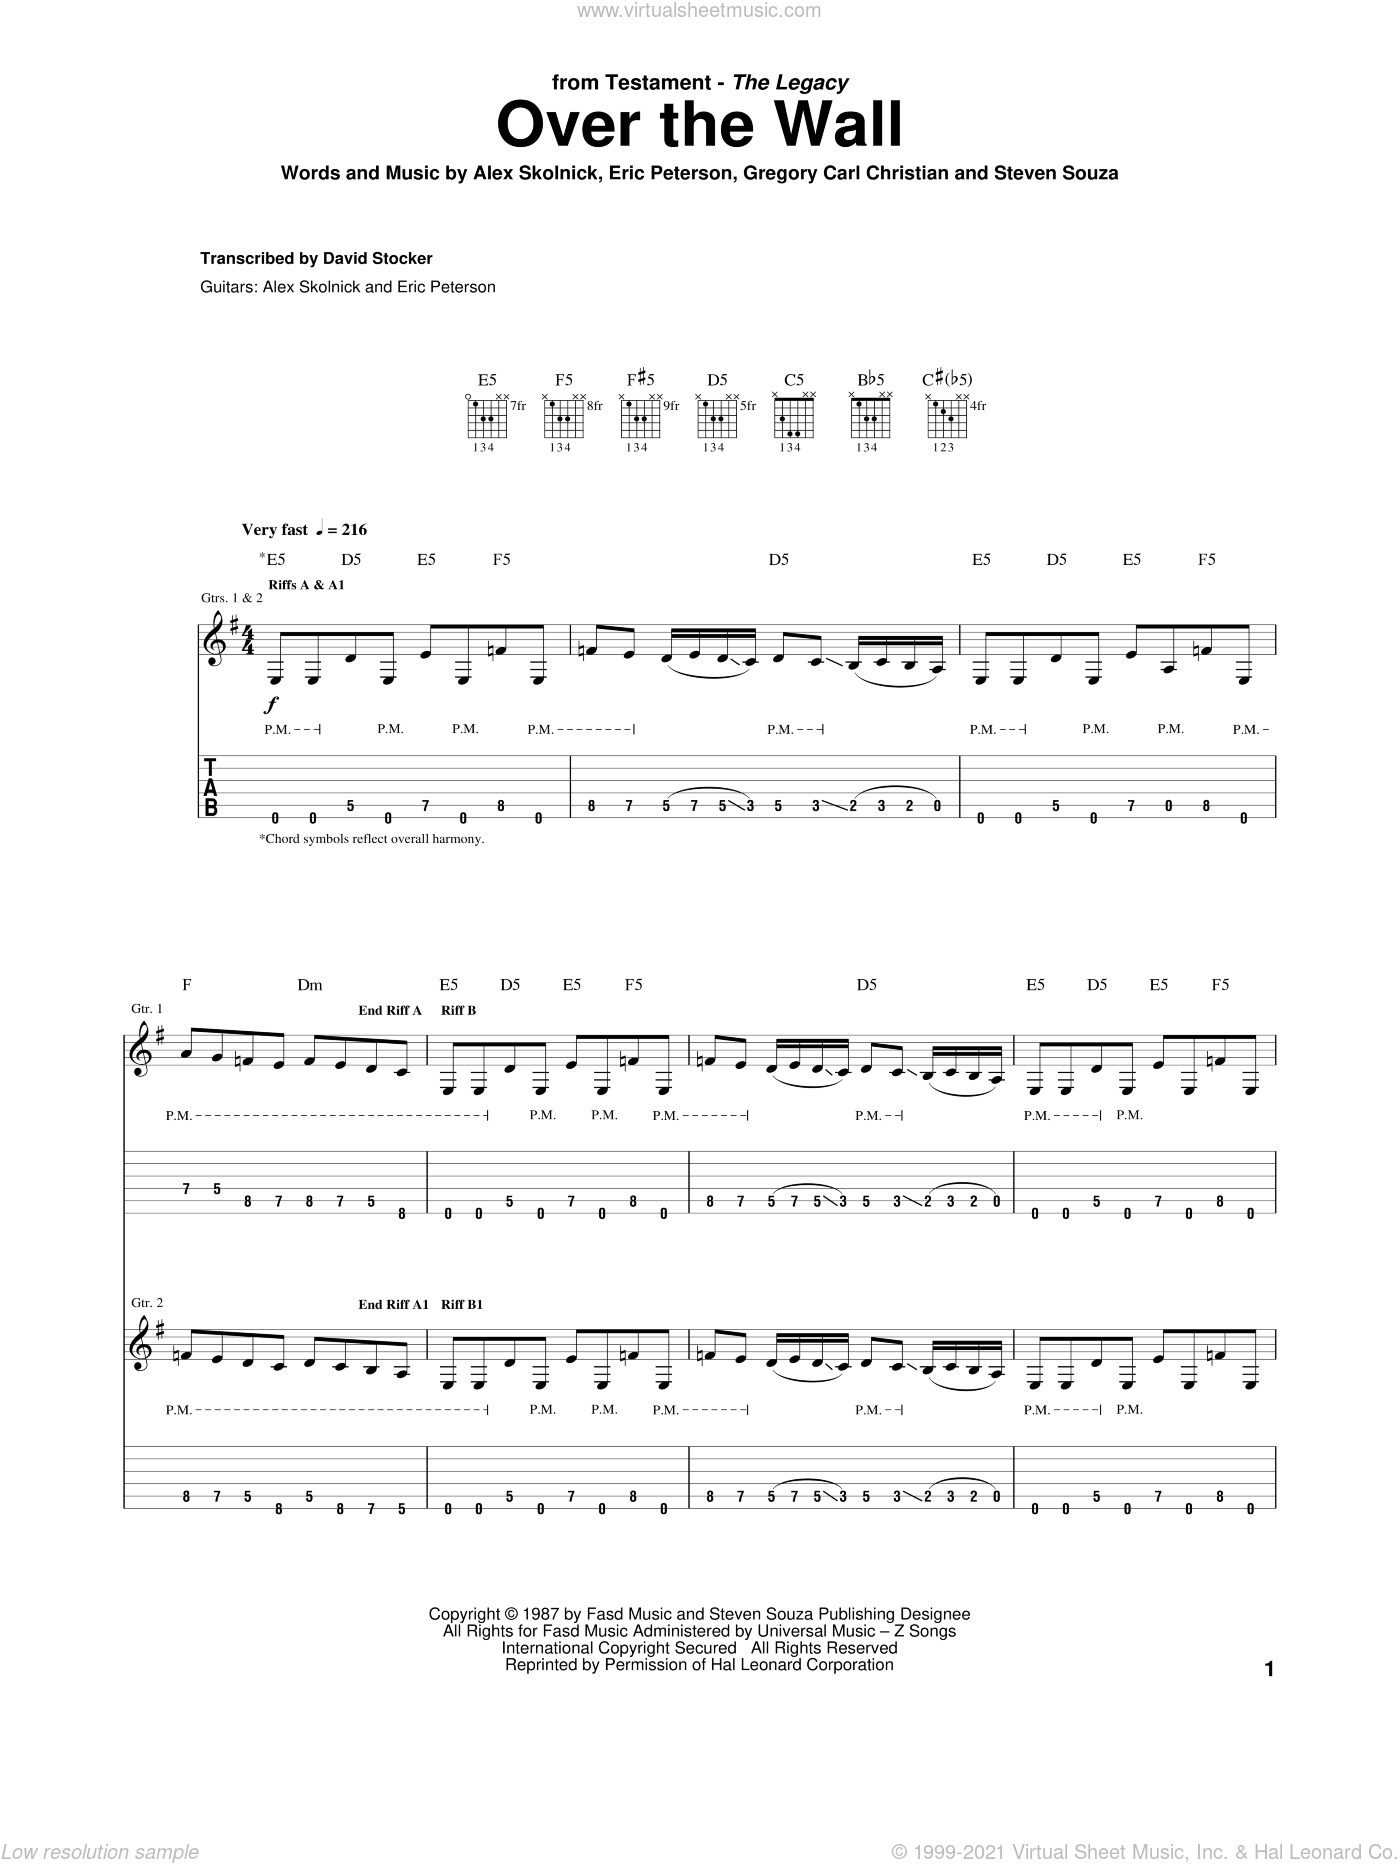 Over The Wall sheet music for guitar (tablature) by Steven Souza